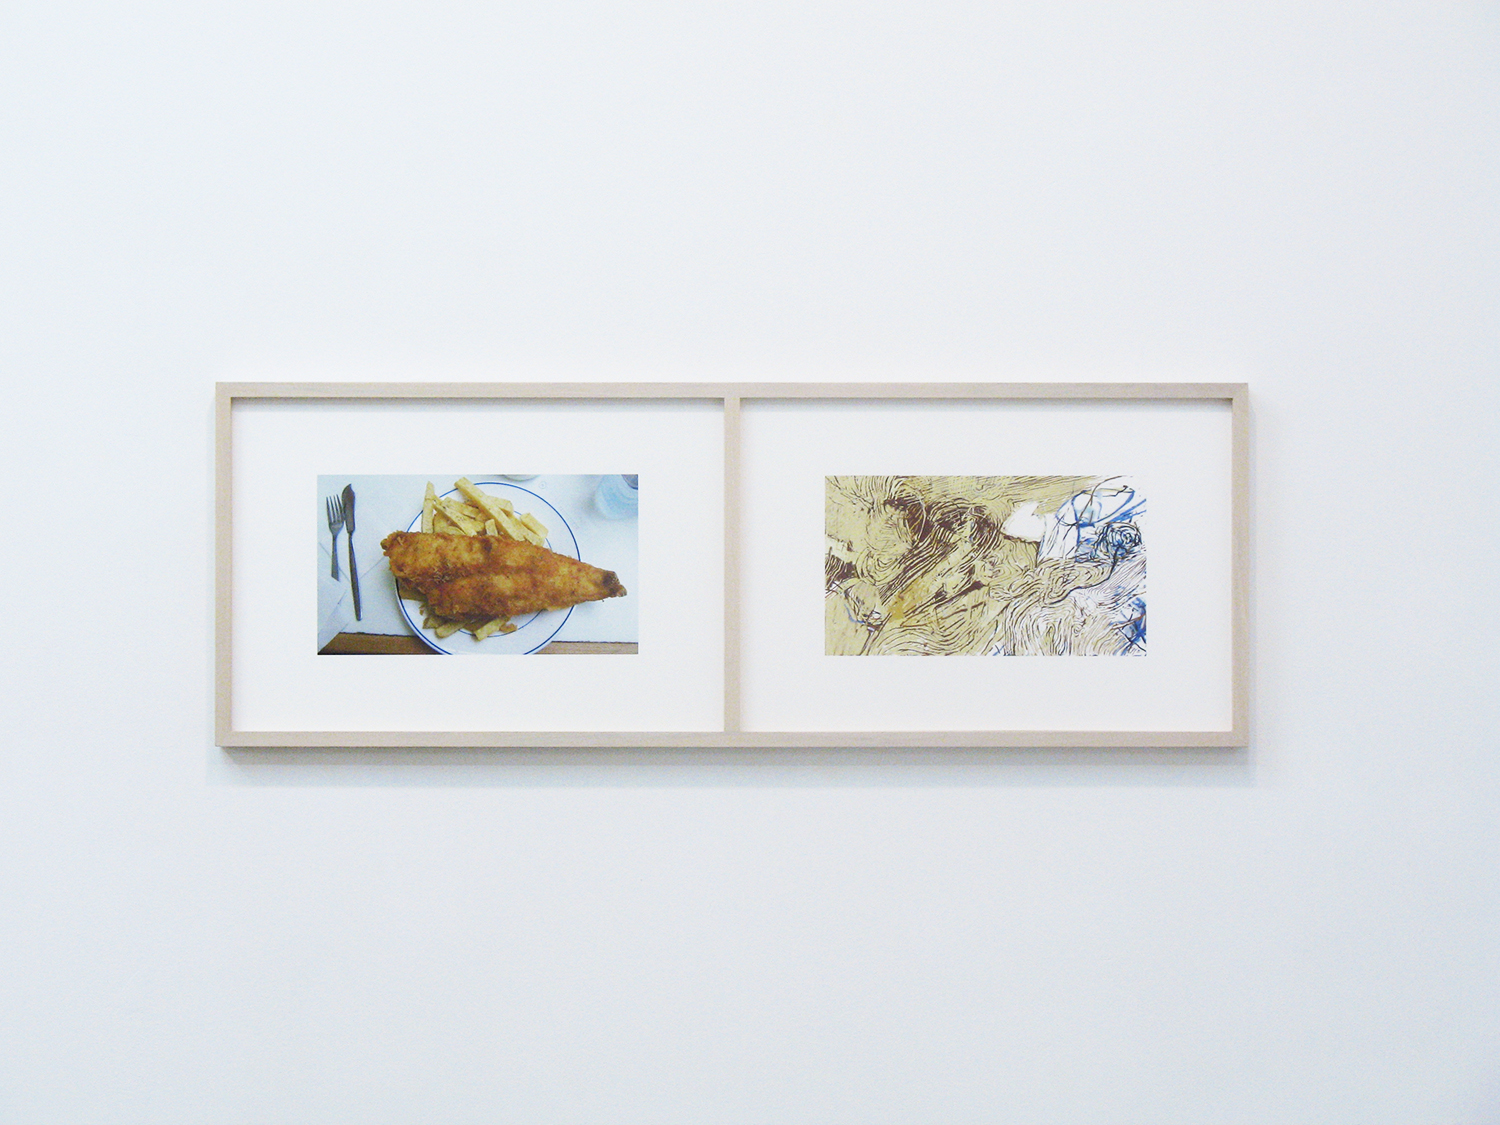 Fish & Chips|Inkjet print on Archived paper|329 x 483 mm x 2|2006